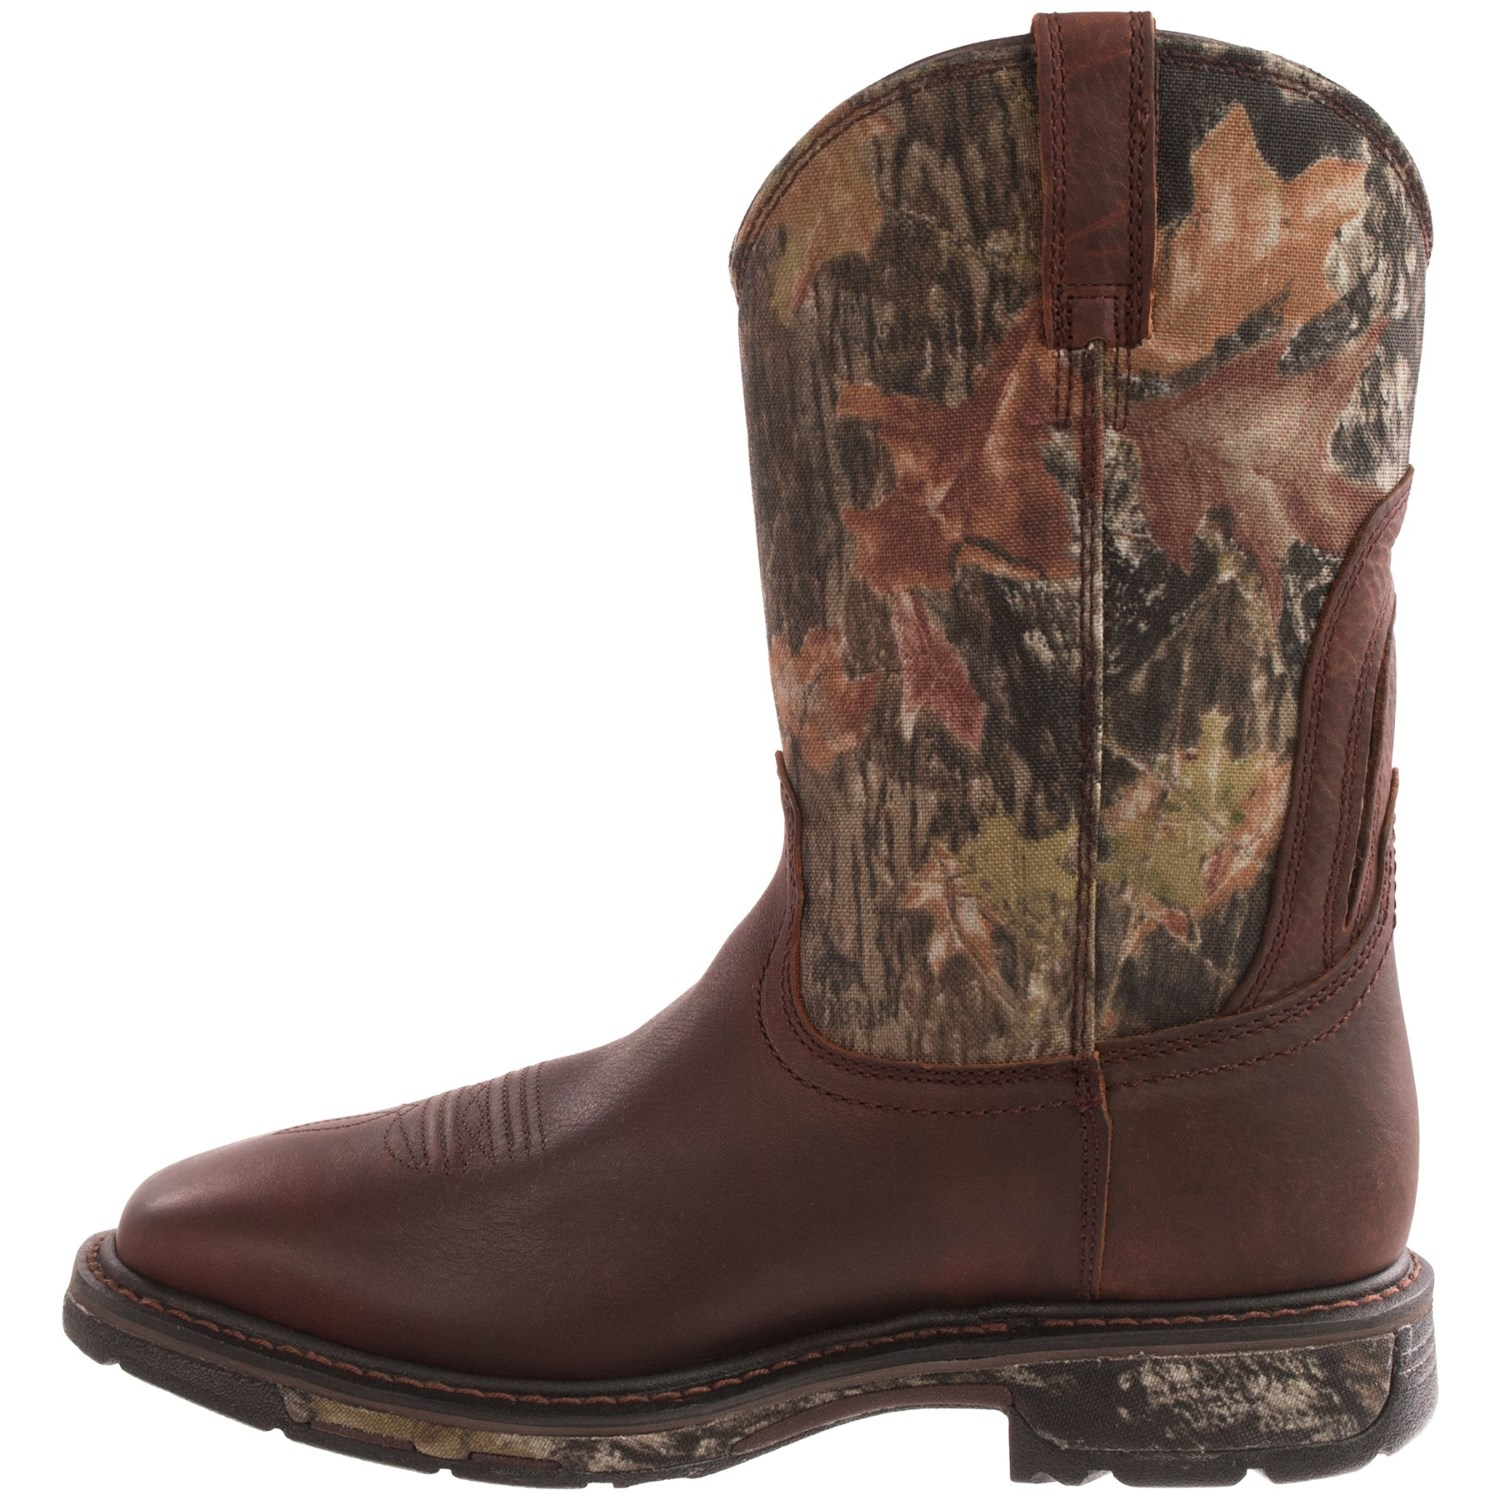 Ariat Workhog Boots hIwCR2tx